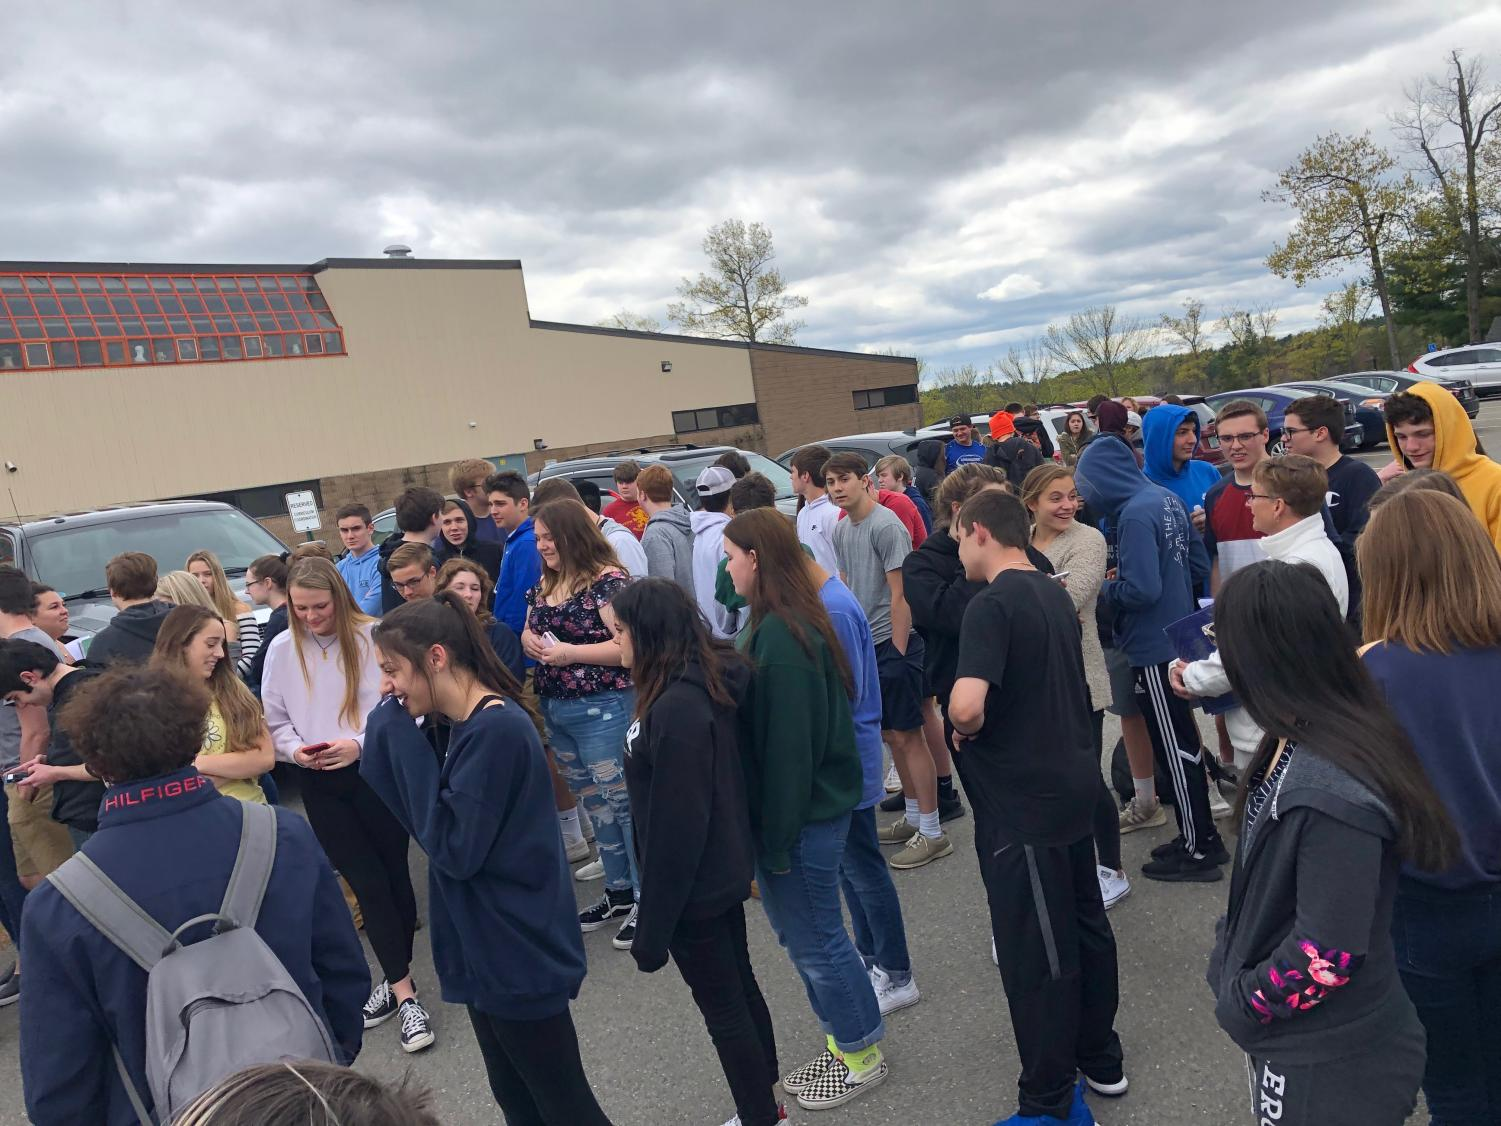 Students+wait+for+the+fire+engines+to+arrive+at+LHS.+The+firefighters+cleared+the+building+to+make+sure+it+was+safe+enough+for+the+school+to+return+to+classes.+